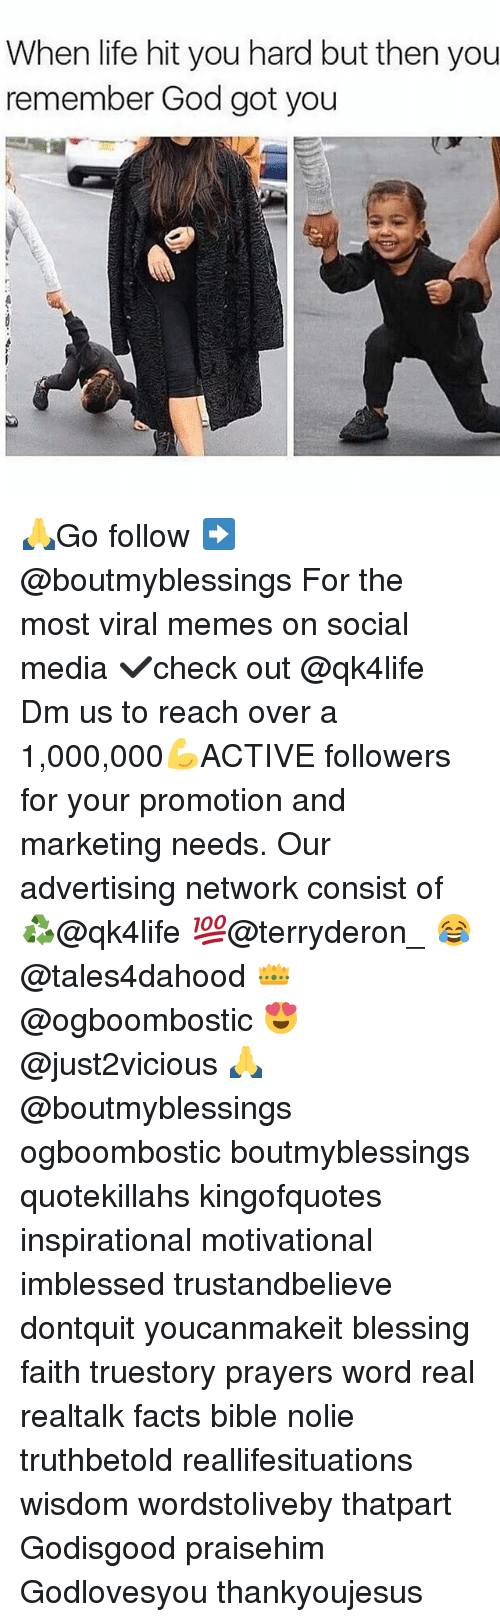 Facts, God, and Life: When life hit you hard but then you  remember God got you 🙏Go follow ➡@boutmyblessings For the most viral memes on social media ✔check out @qk4life Dm us to reach over a 1,000,000💪ACTIVE followers for your promotion and marketing needs. Our advertising network consist of ♻@qk4life 💯@terryderon_ 😂@tales4dahood 👑@ogboombostic 😍@just2vicious 🙏@boutmyblessings ogboombostic boutmyblessings quotekillahs kingofquotes inspirational motivational imblessed trustandbelieve dontquit youcanmakeit blessing faith truestory prayers word real realtalk facts bible nolie truthbetold reallifesituations wisdom wordstoliveby thatpart Godisgood praisehim Godlovesyou thankyoujesus